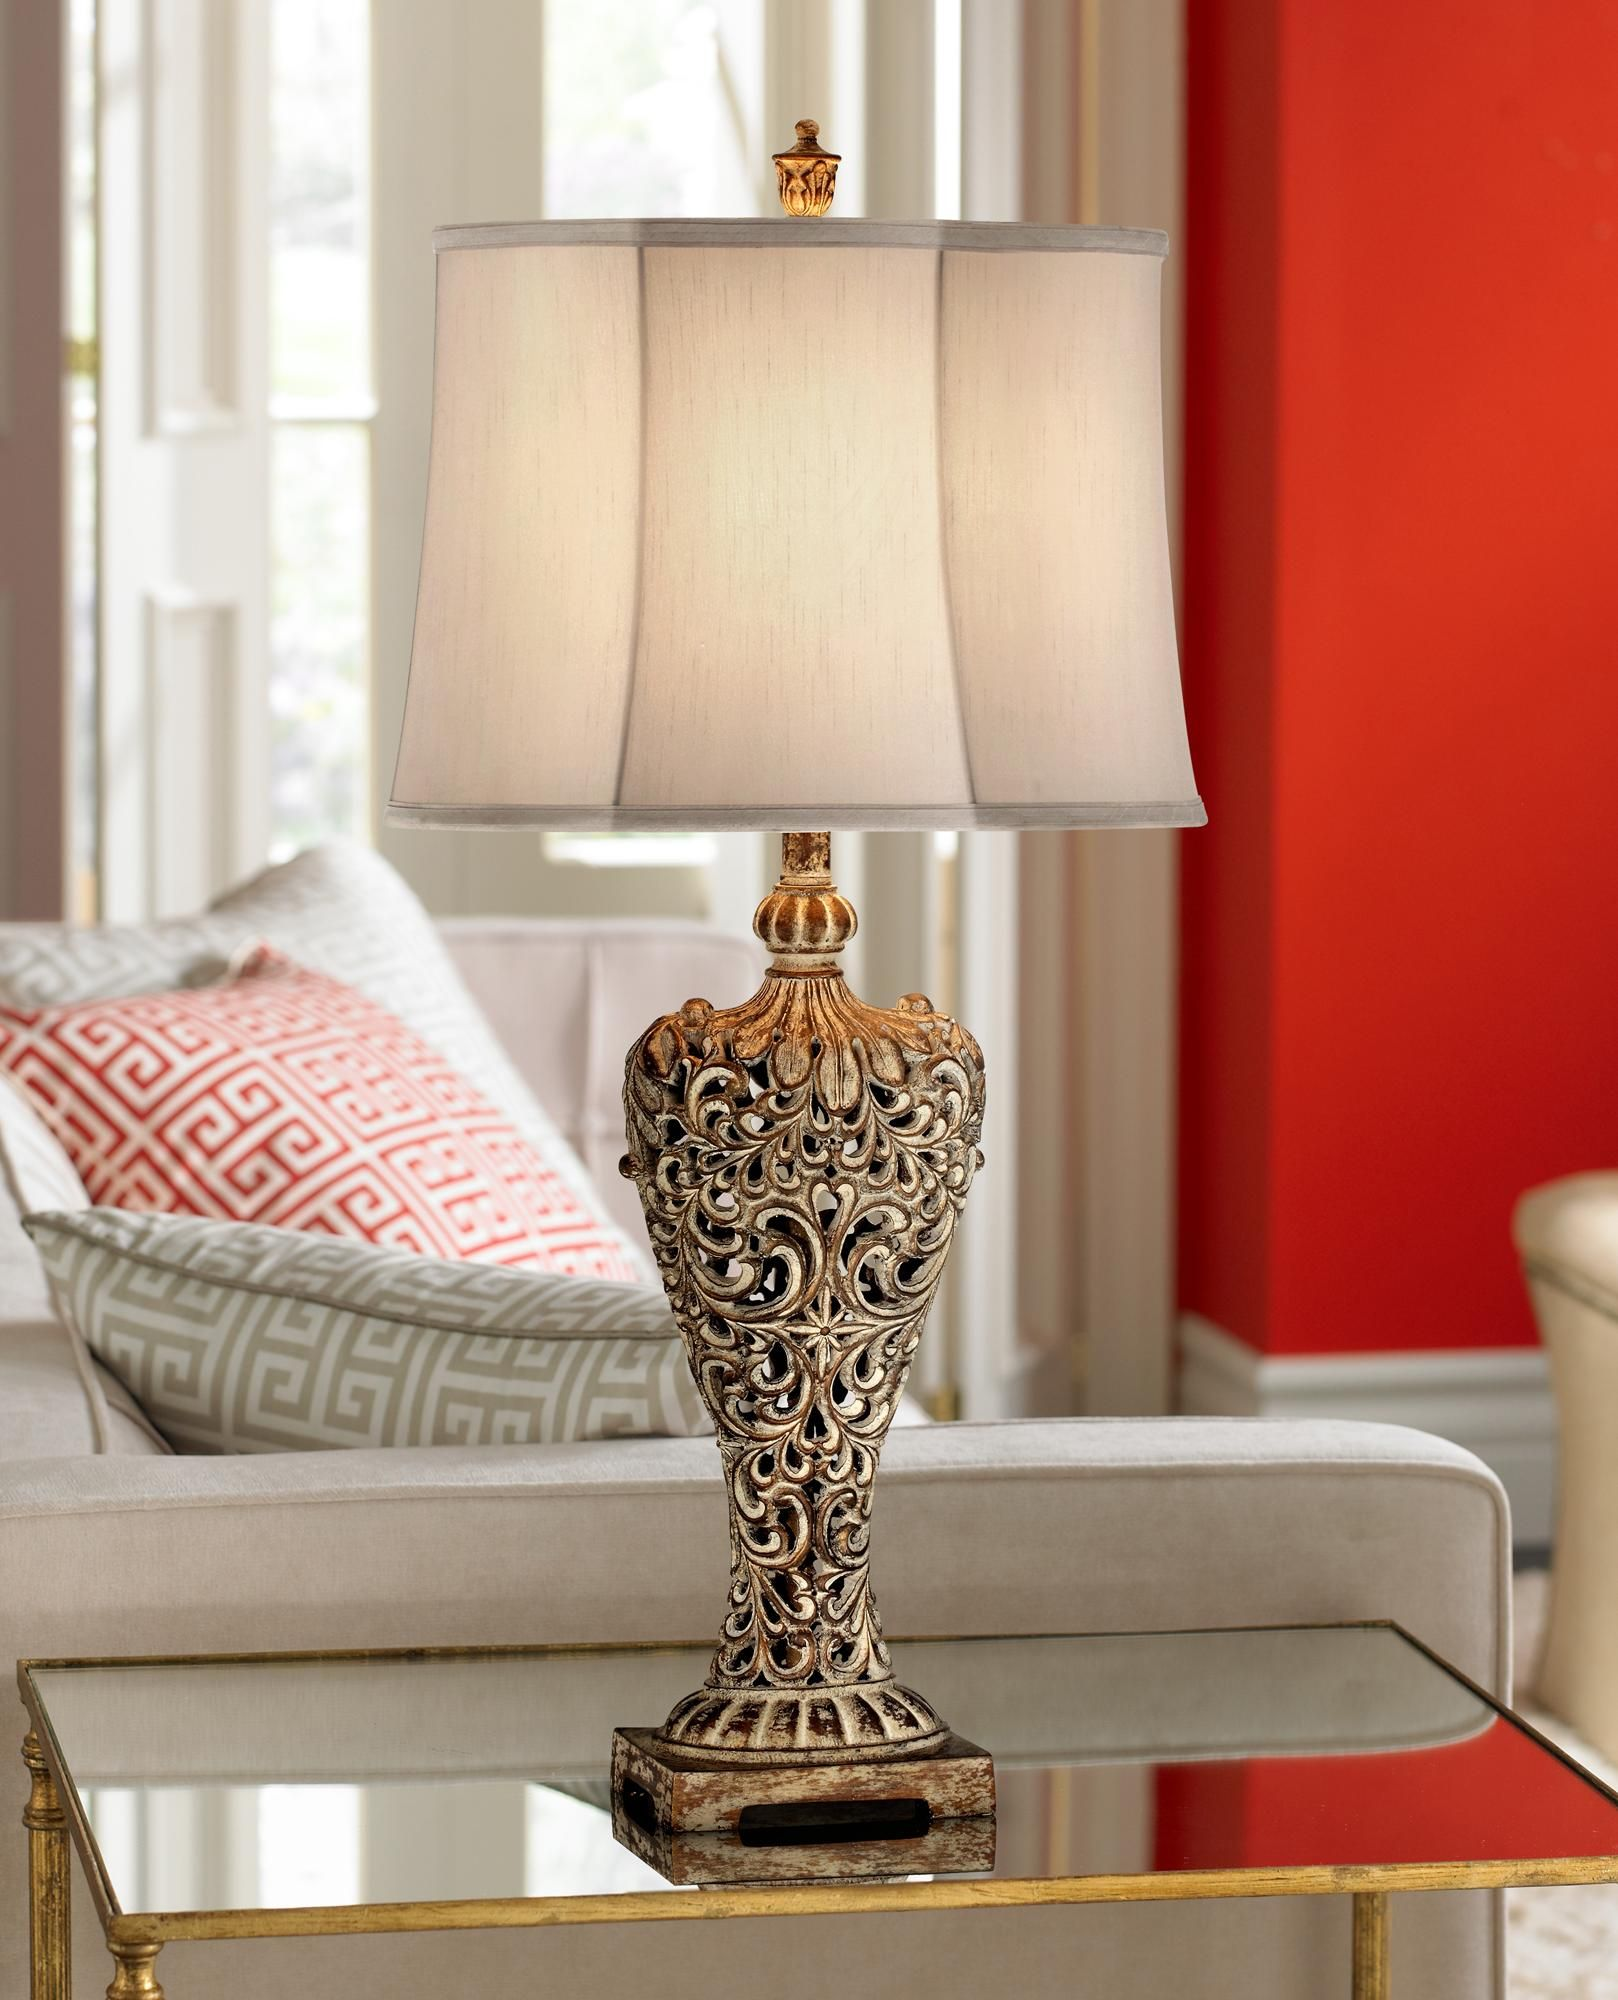 Elle Carved Antique Bronze Classic Table Lamp 3j928 Lamps Plus Antique Table Lamps Classic Table Lamp Table Lamp